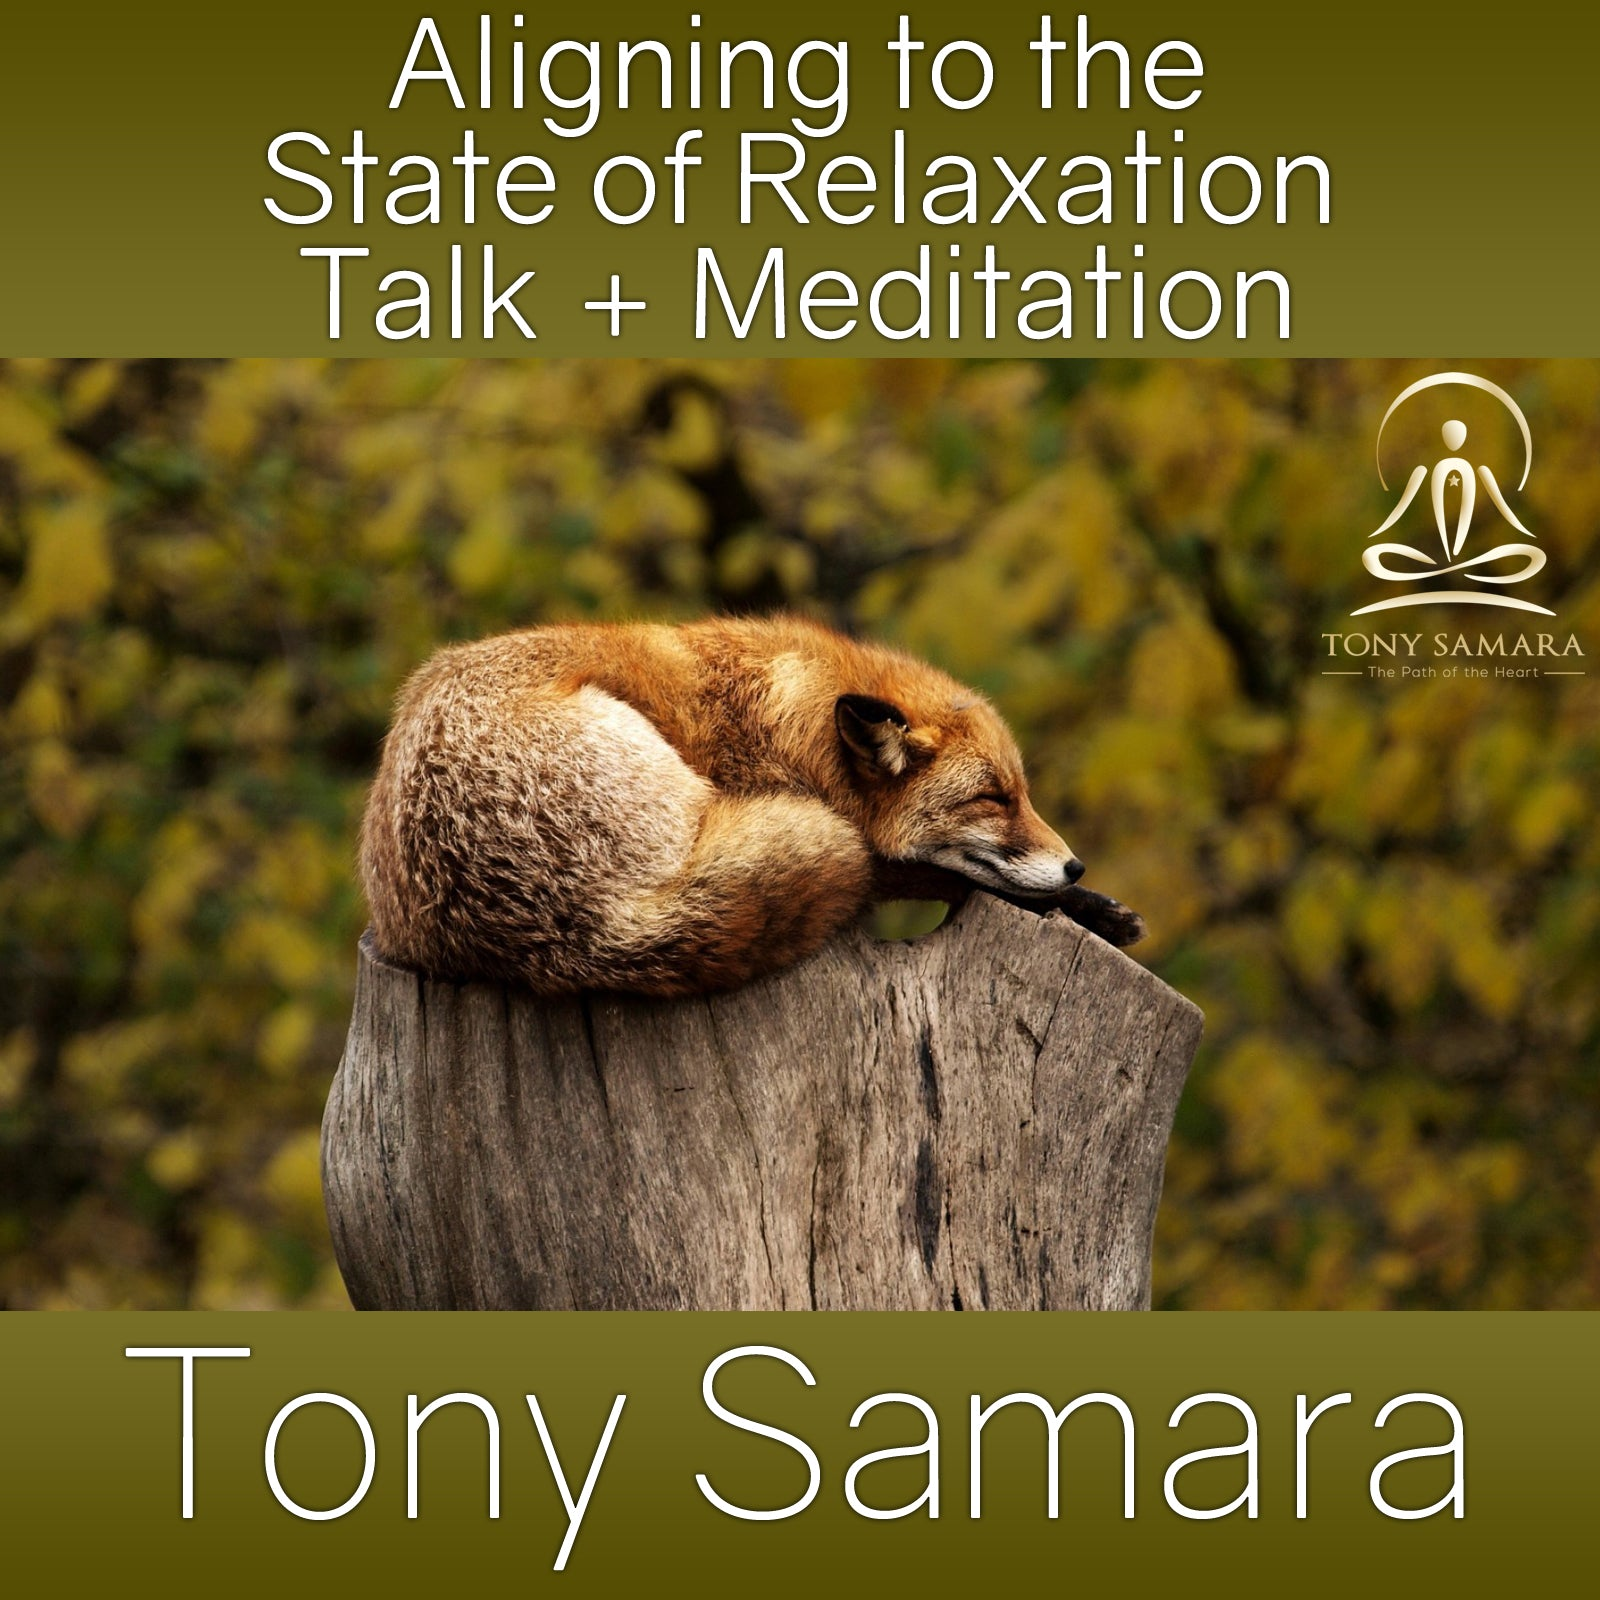 Aligning to the State of Relaxation Talk + Meditation (MP3 Audio Download) - Tony Samara Meditation